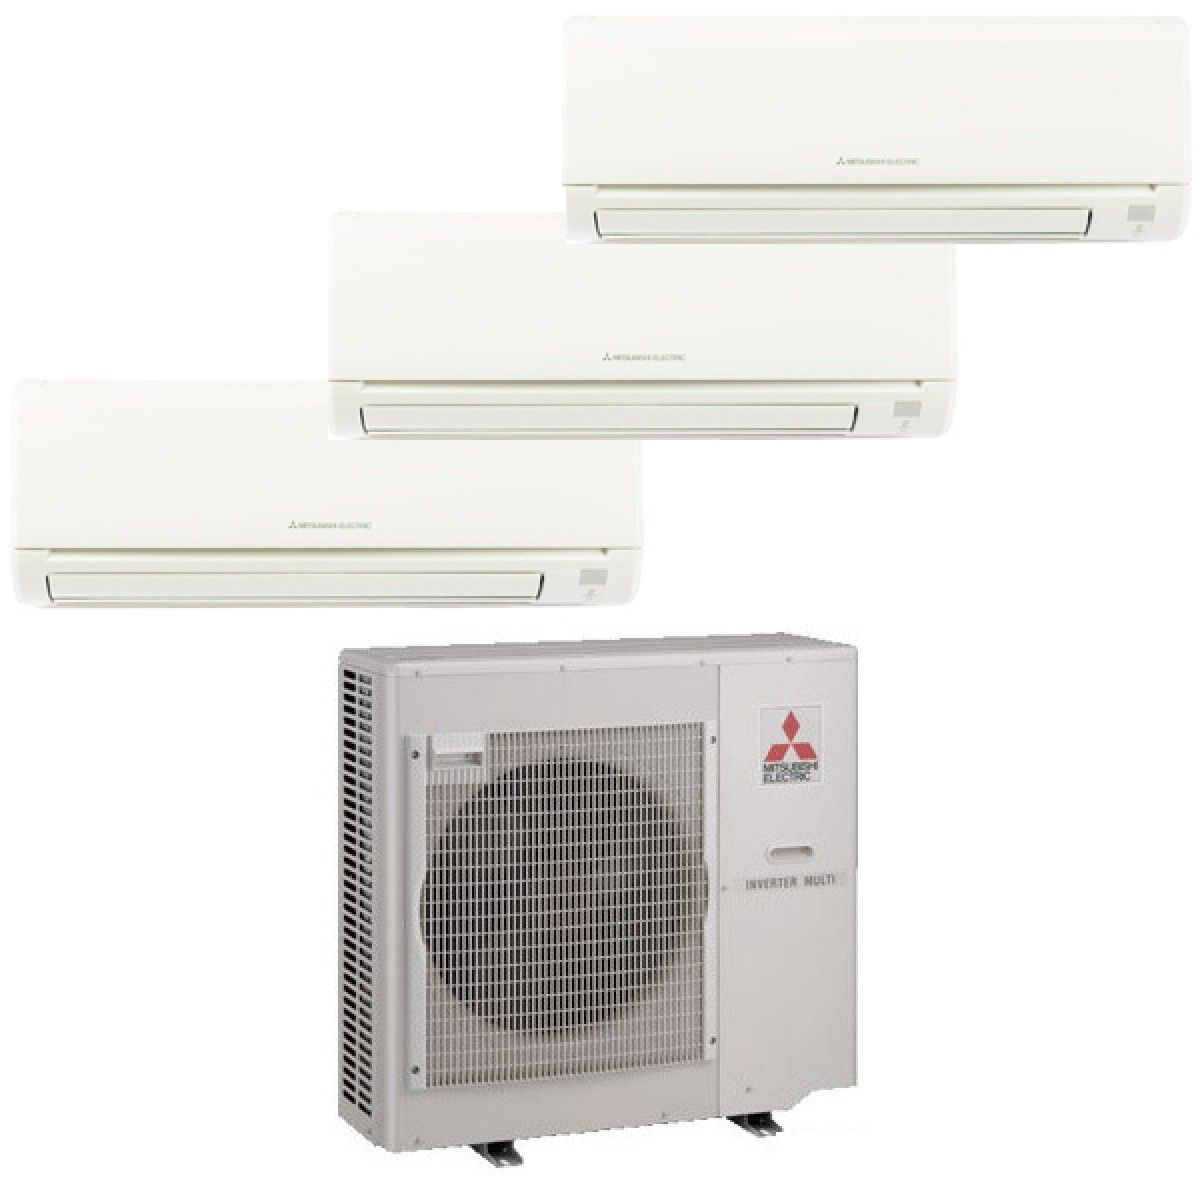 Mitsubishi mr slim 3 zone heat pump with 2 9k btu indoor Ductless ac